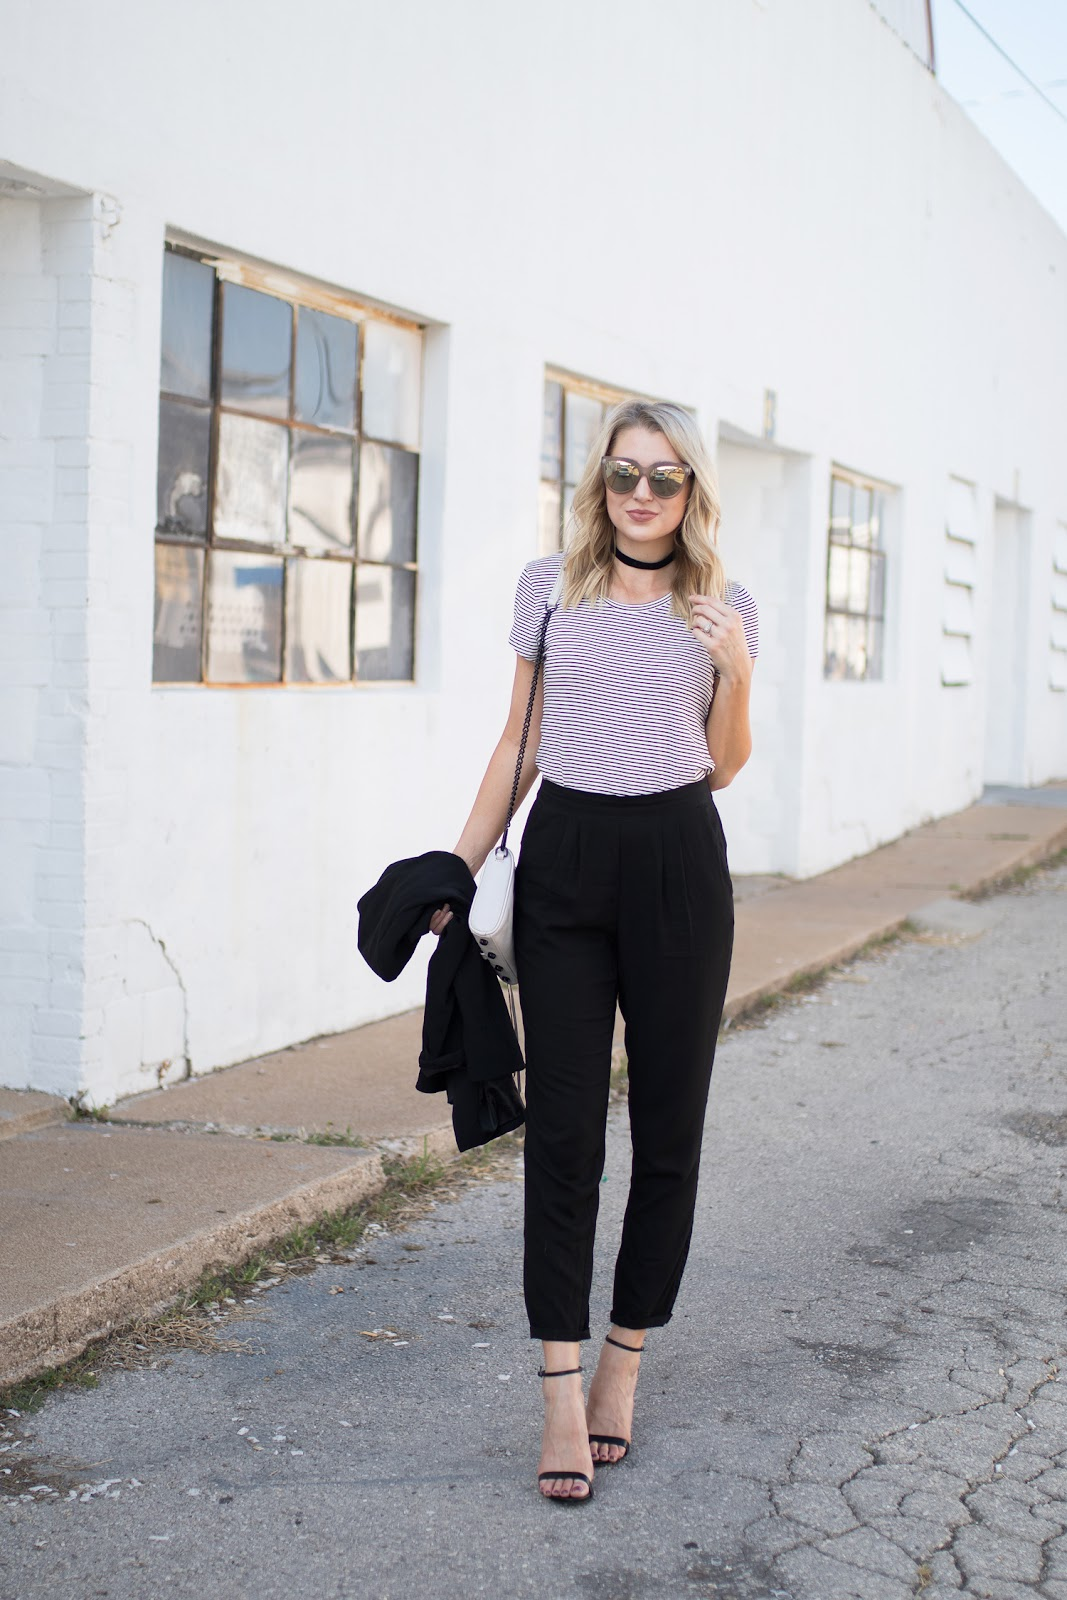 Comfortable yet chic work outfit